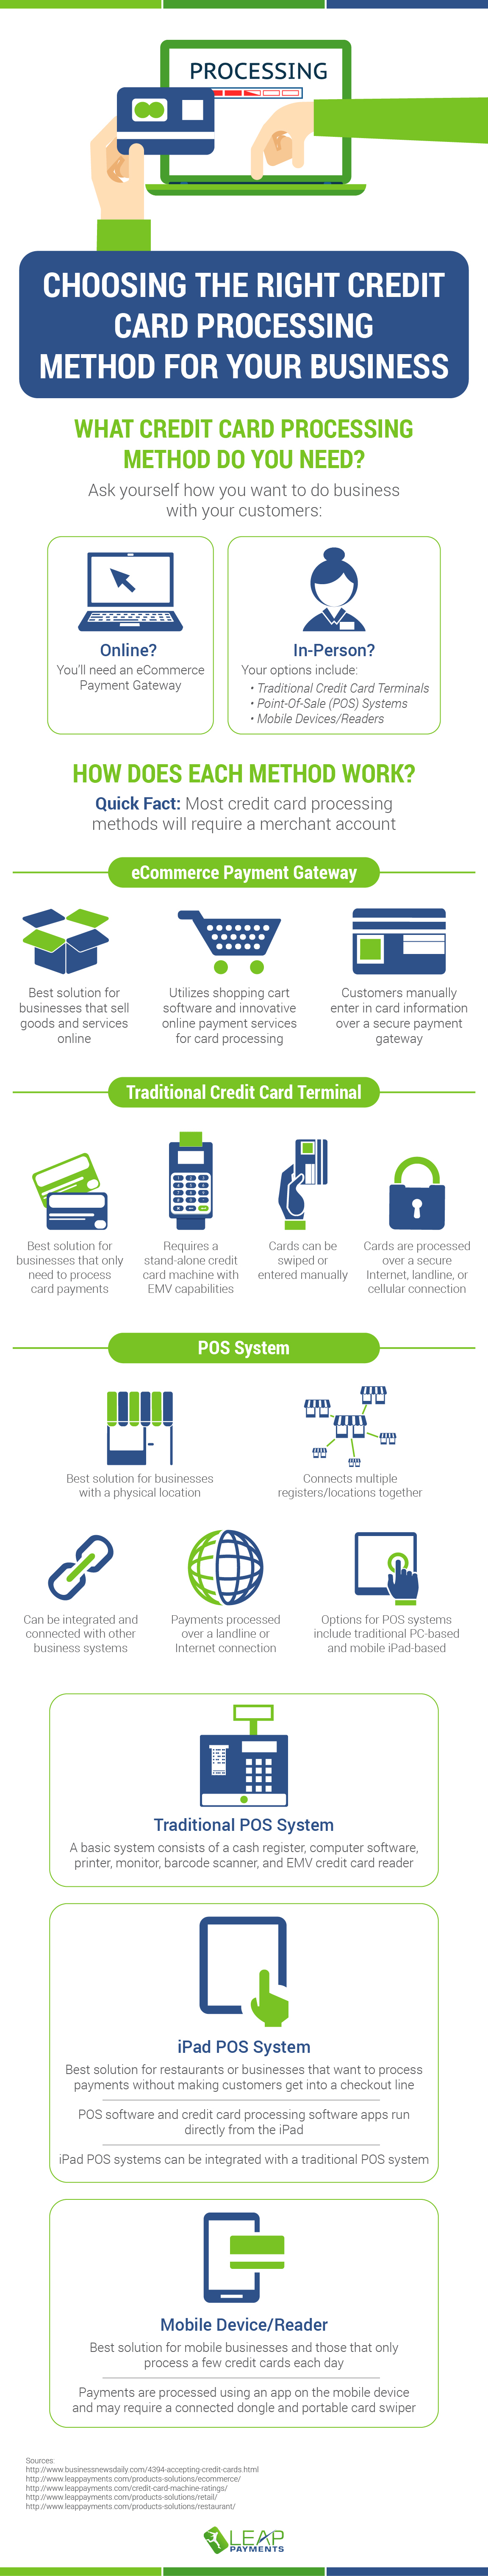 Choosing the Right Credit Card Processing Method for Your Business